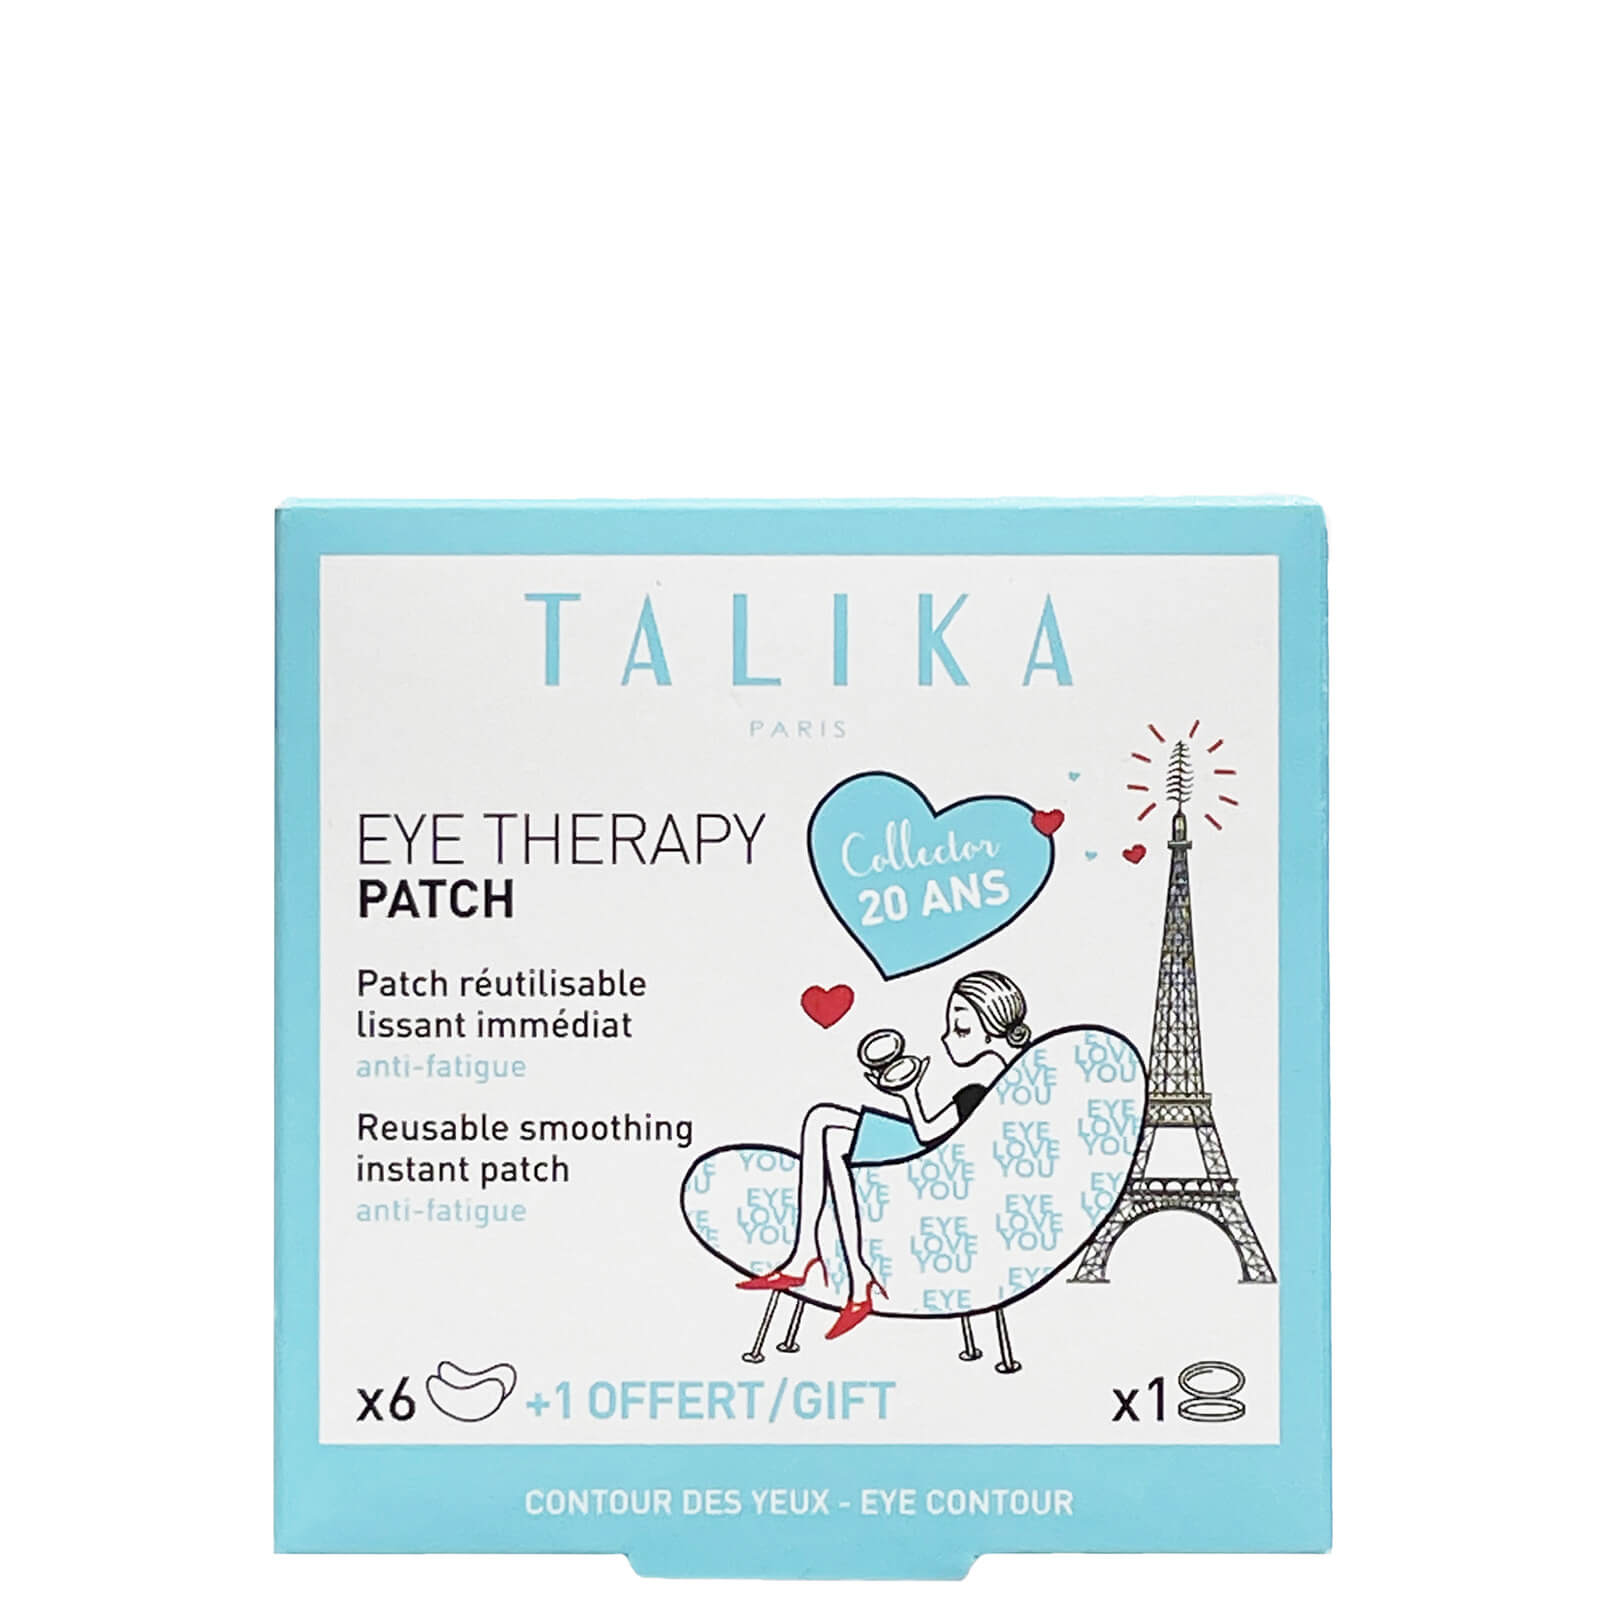 Talika Eye Therapy Patch 20 Years Collector Edition Set (Worth £58.20)